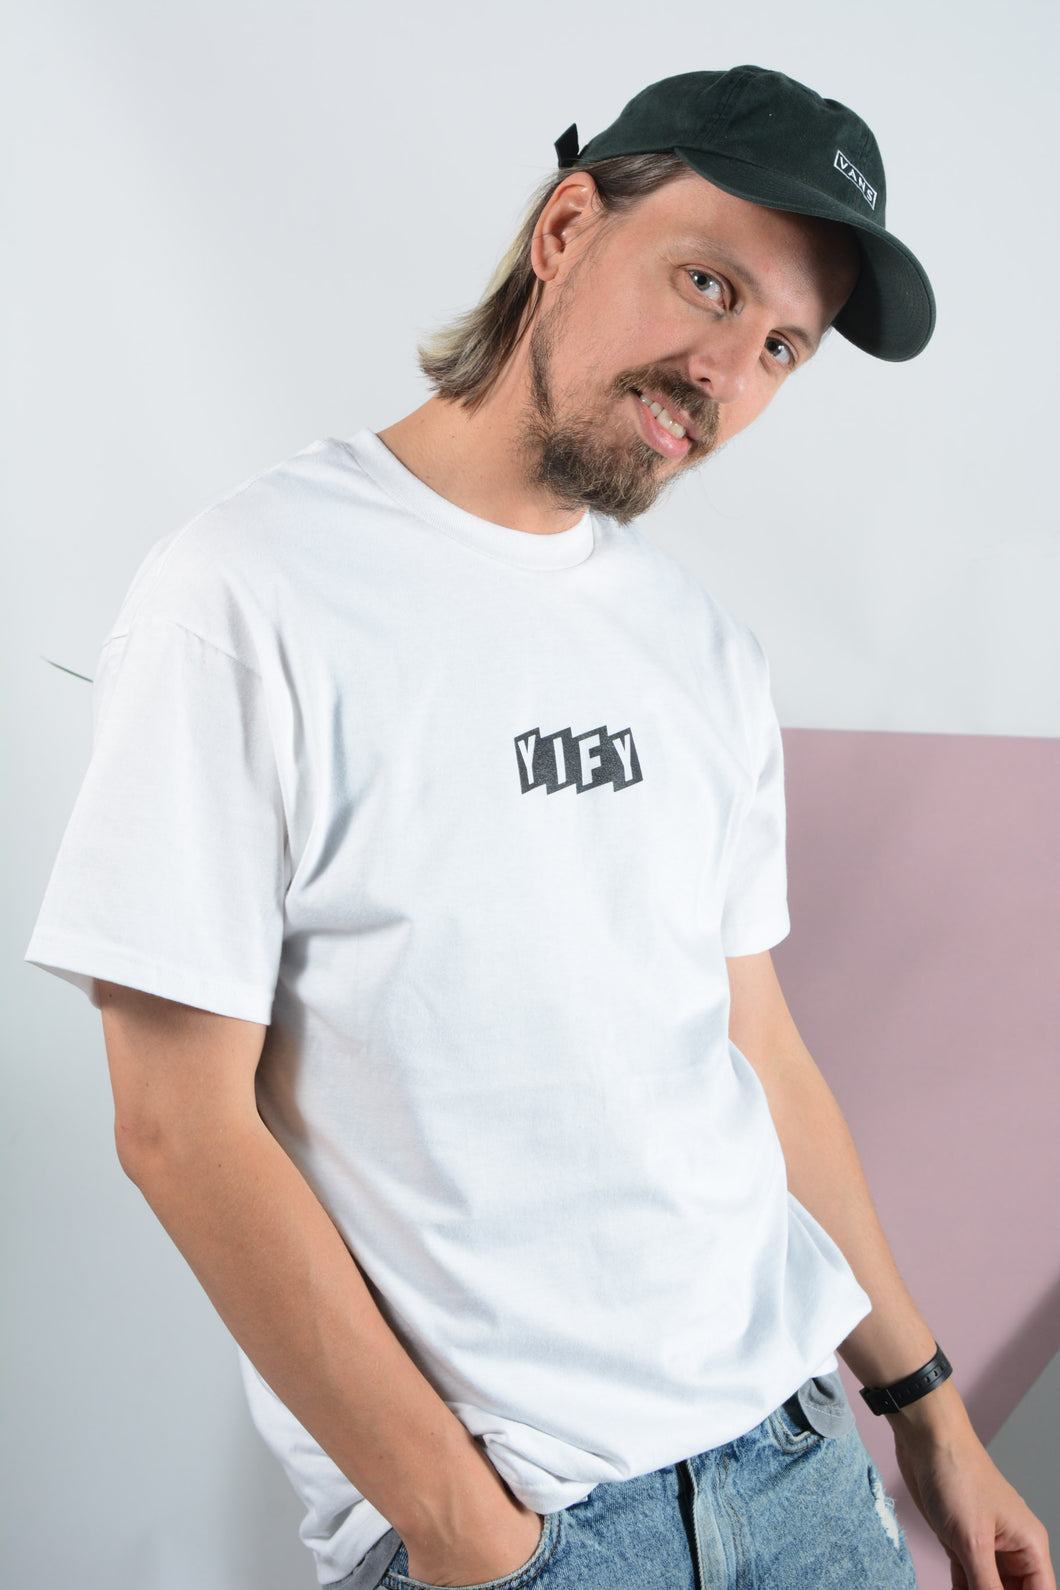 YIFY T-shirt in white with Parallel logo